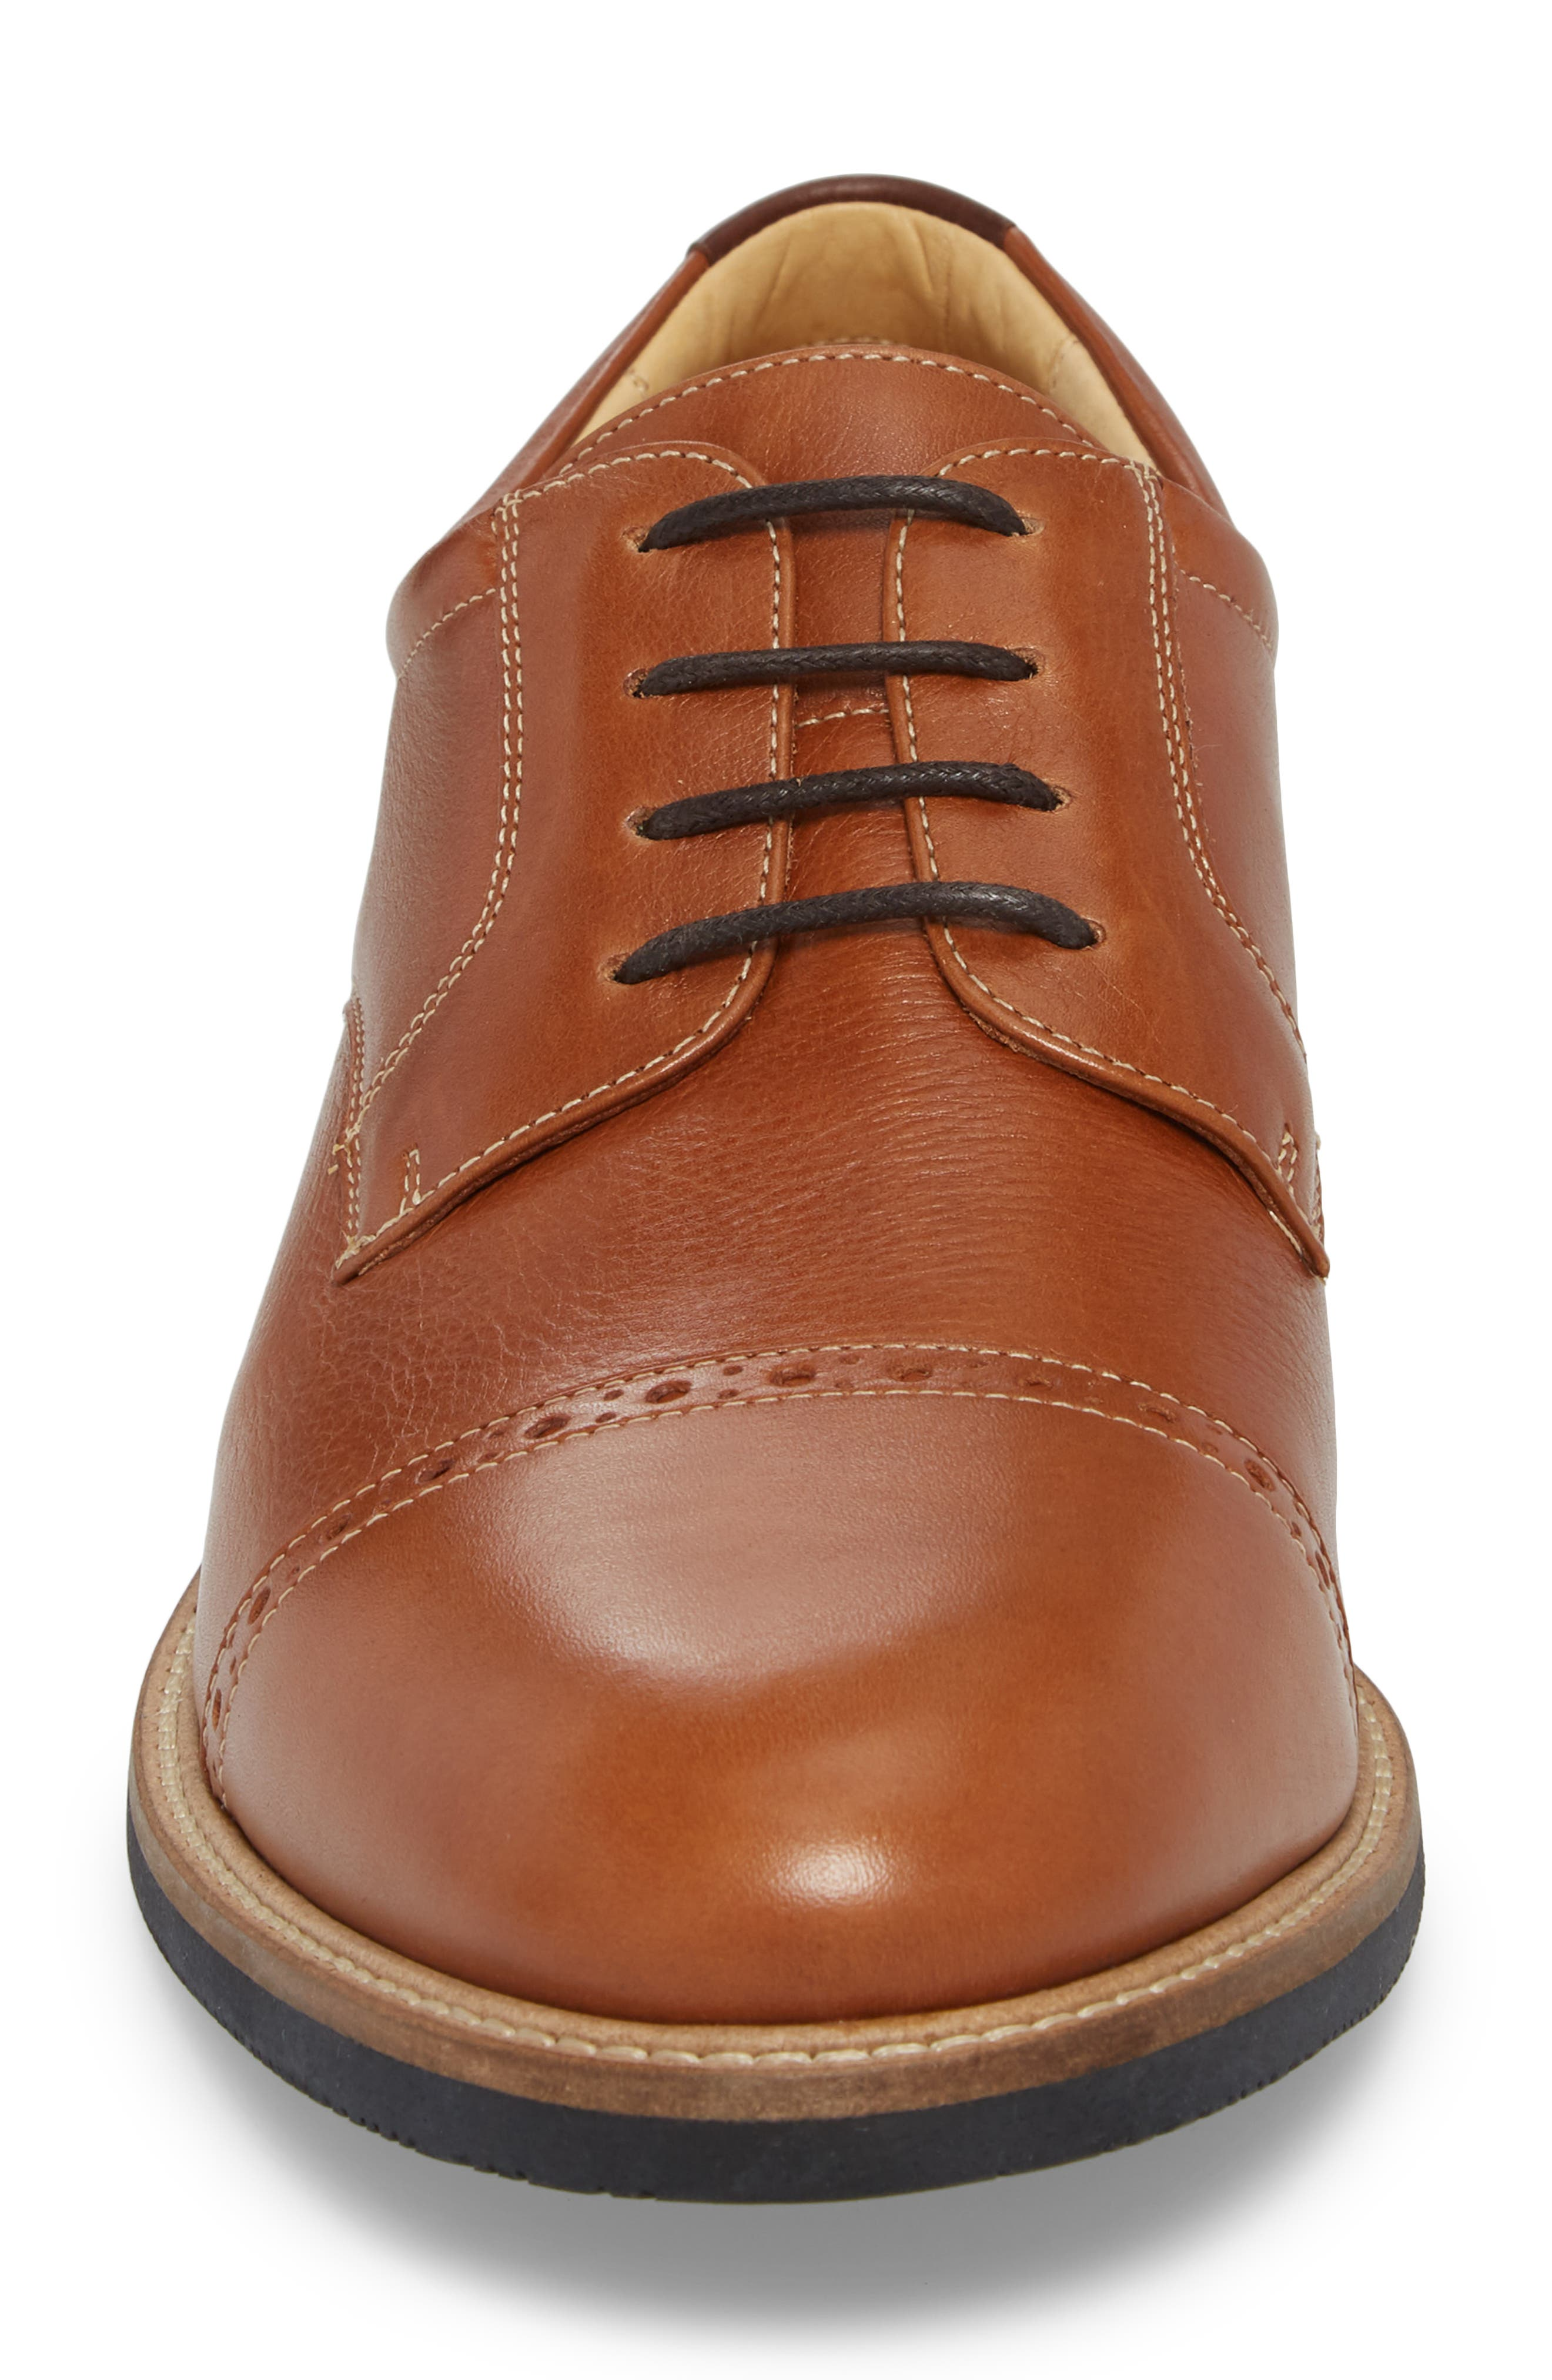 JOHNSTON & MURPHY,                             Barlow Cap Toe Derby,                             Alternate thumbnail 4, color,                             TAN LEATHER